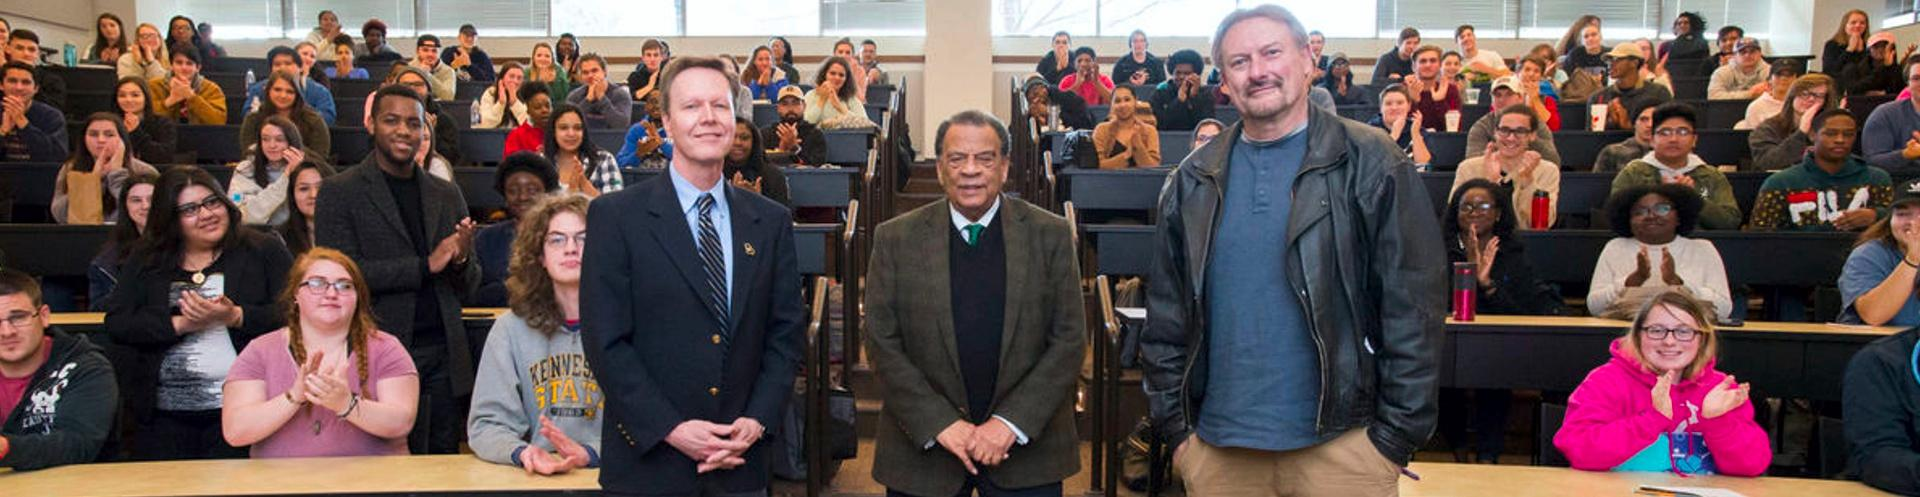 Andrew Young speaks at KSU